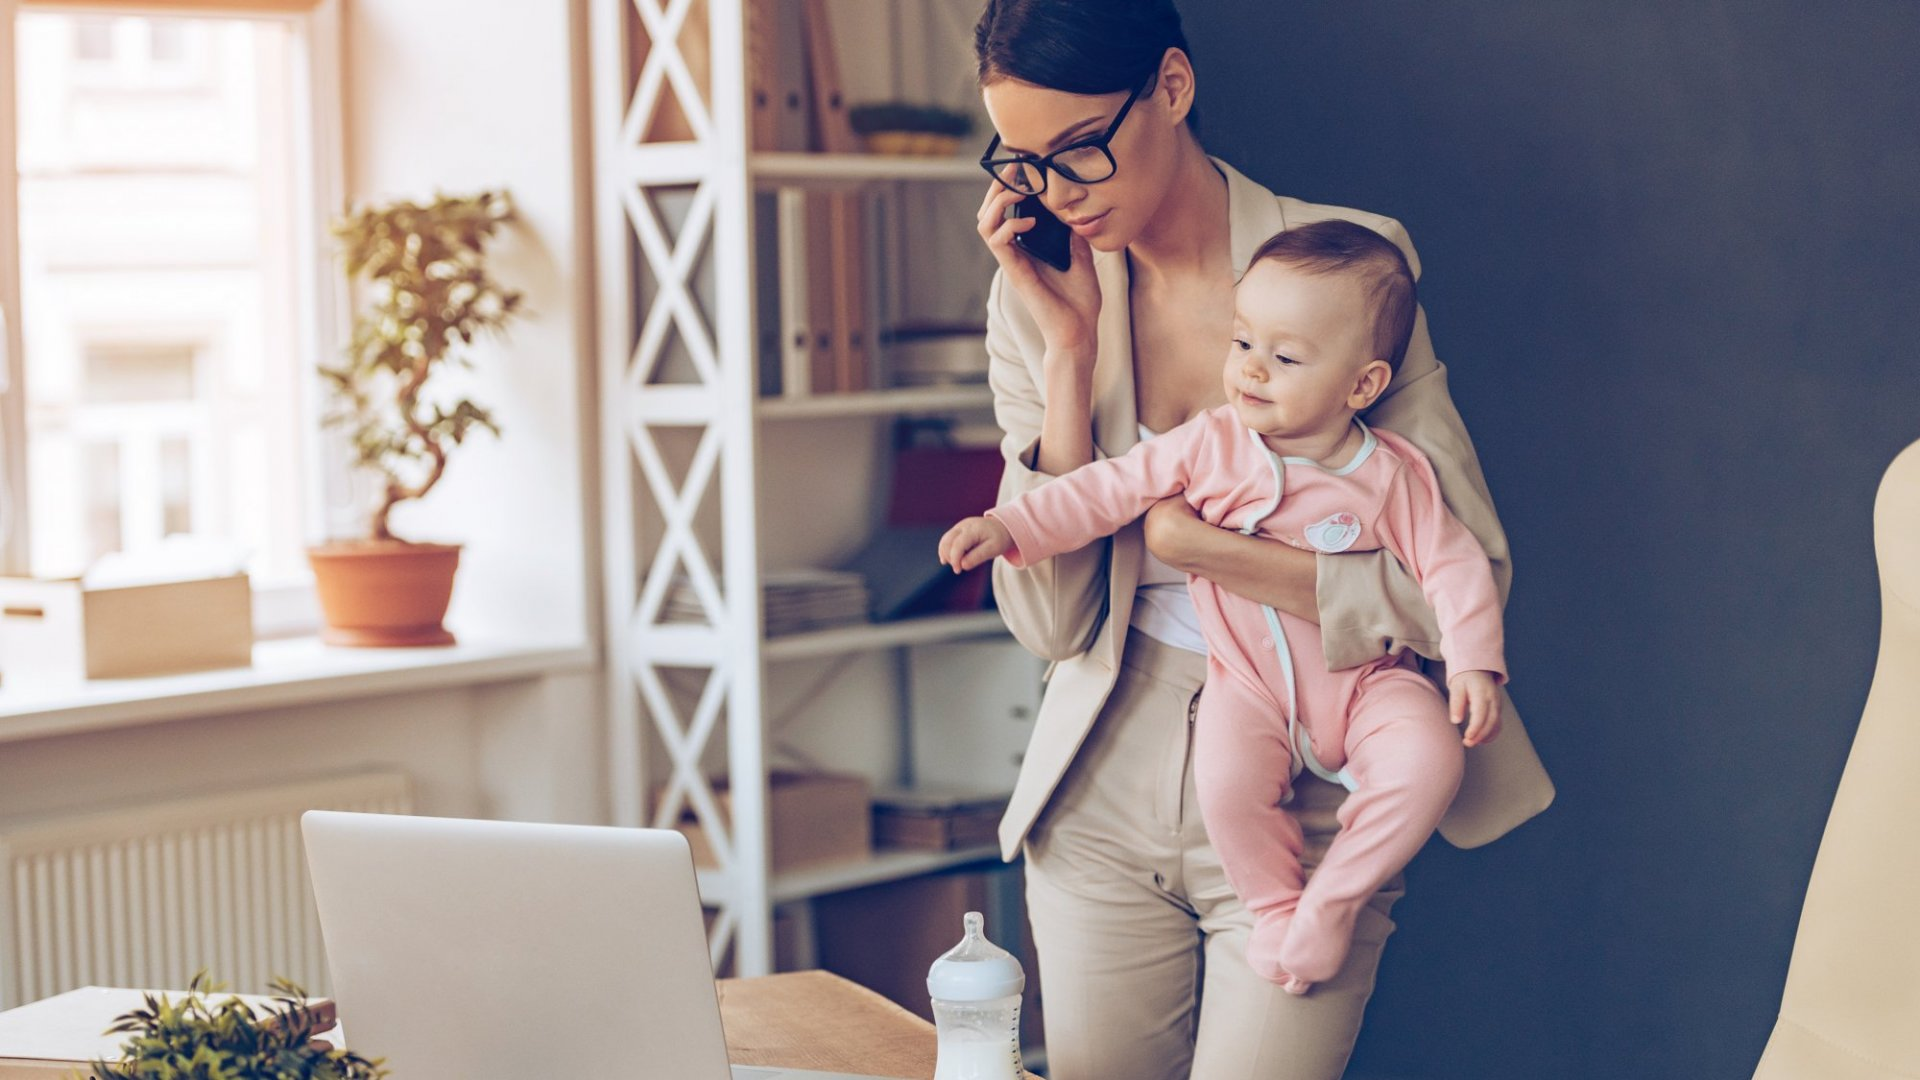 3 Tips on How to Own Your Parenthood At Work